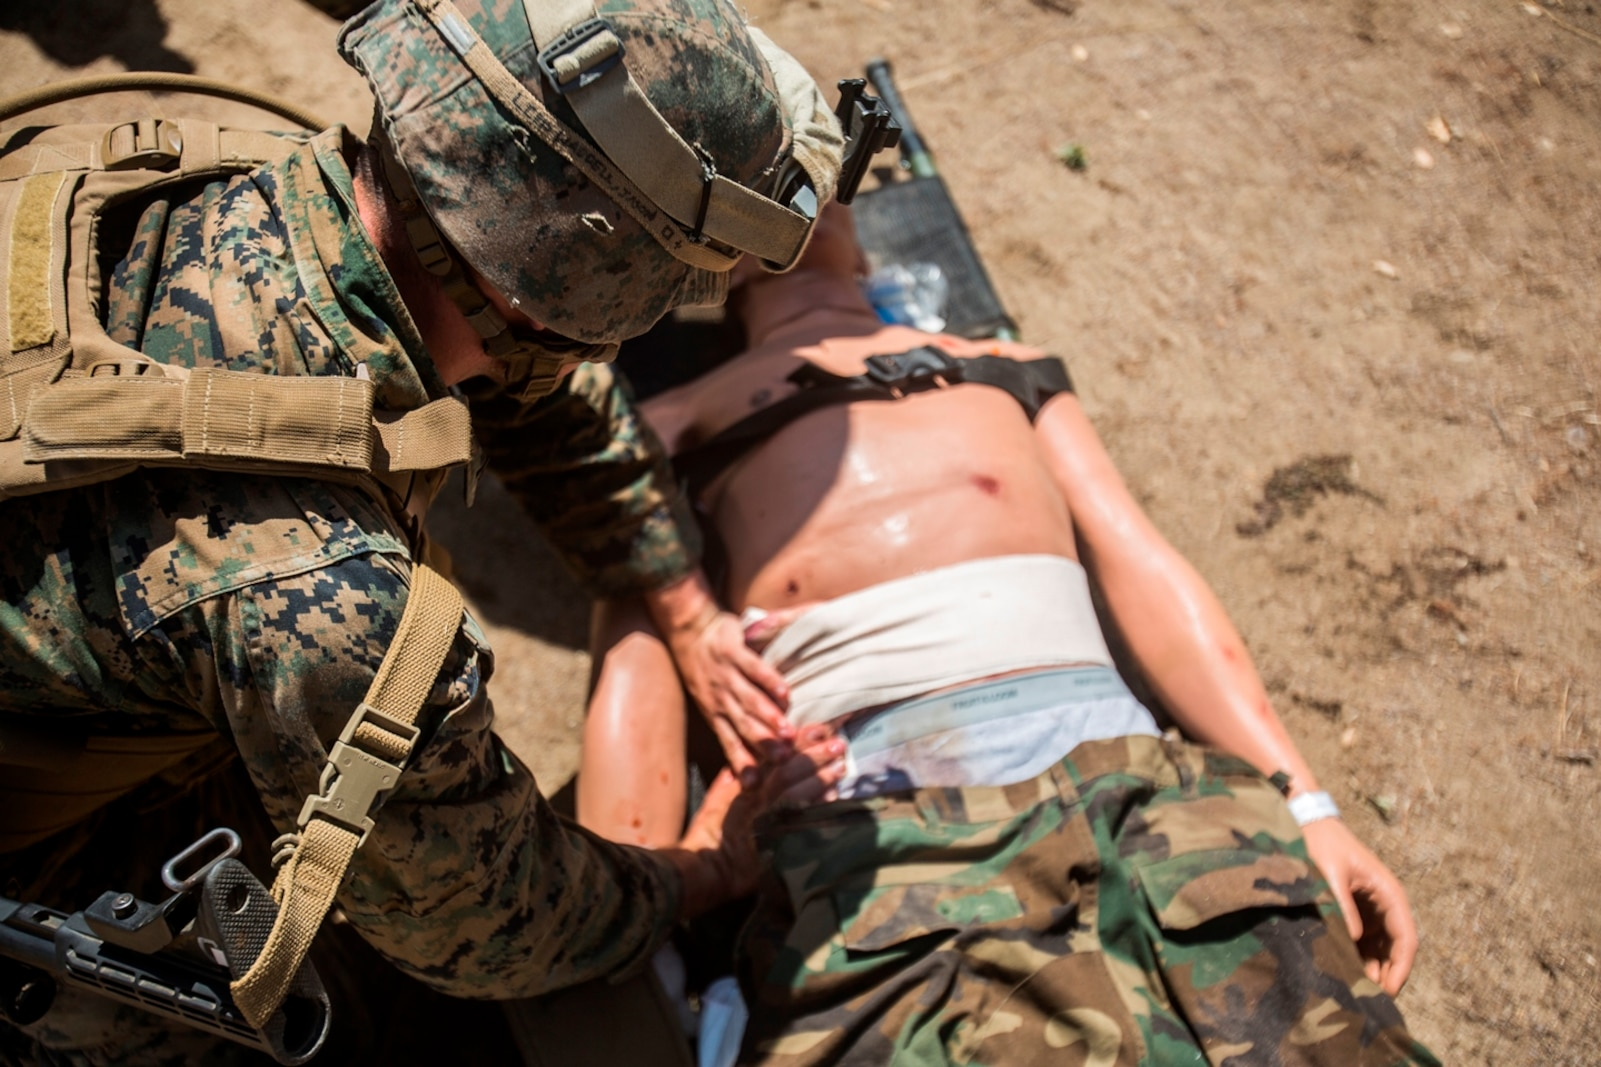 U.S. Marine Lance Cpl. Jason L. Waddell, a motor vehicle operator with Combat Logistics Battalion 13, provides triage to a simulated casualty during a field medical exercise on Marine Corps Base Camp Pendleton, Calif., Jul. 18, 2017. The exercise is focused on providing units with a combined arms training regimen with a focus on medical abilities.